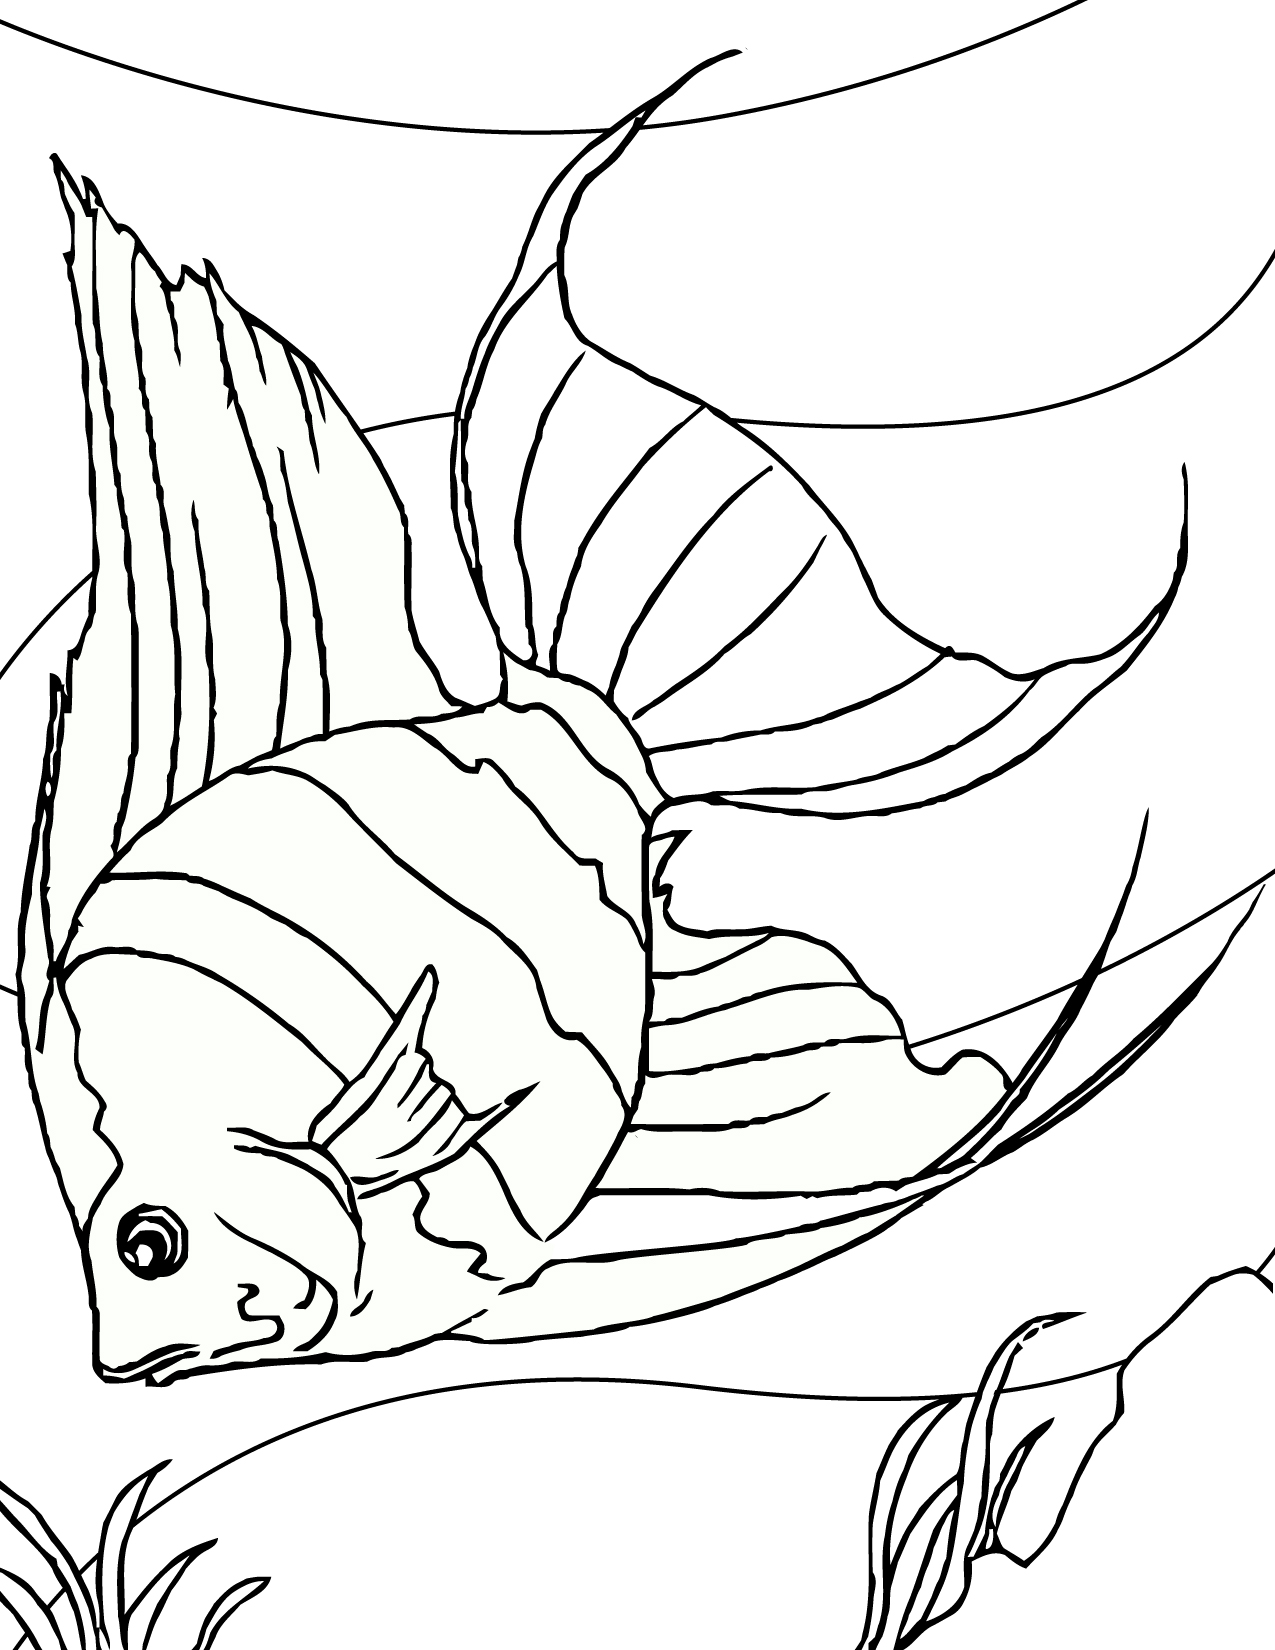 Betta fish coloring pages | Free Coloring Pages | 1650x1275